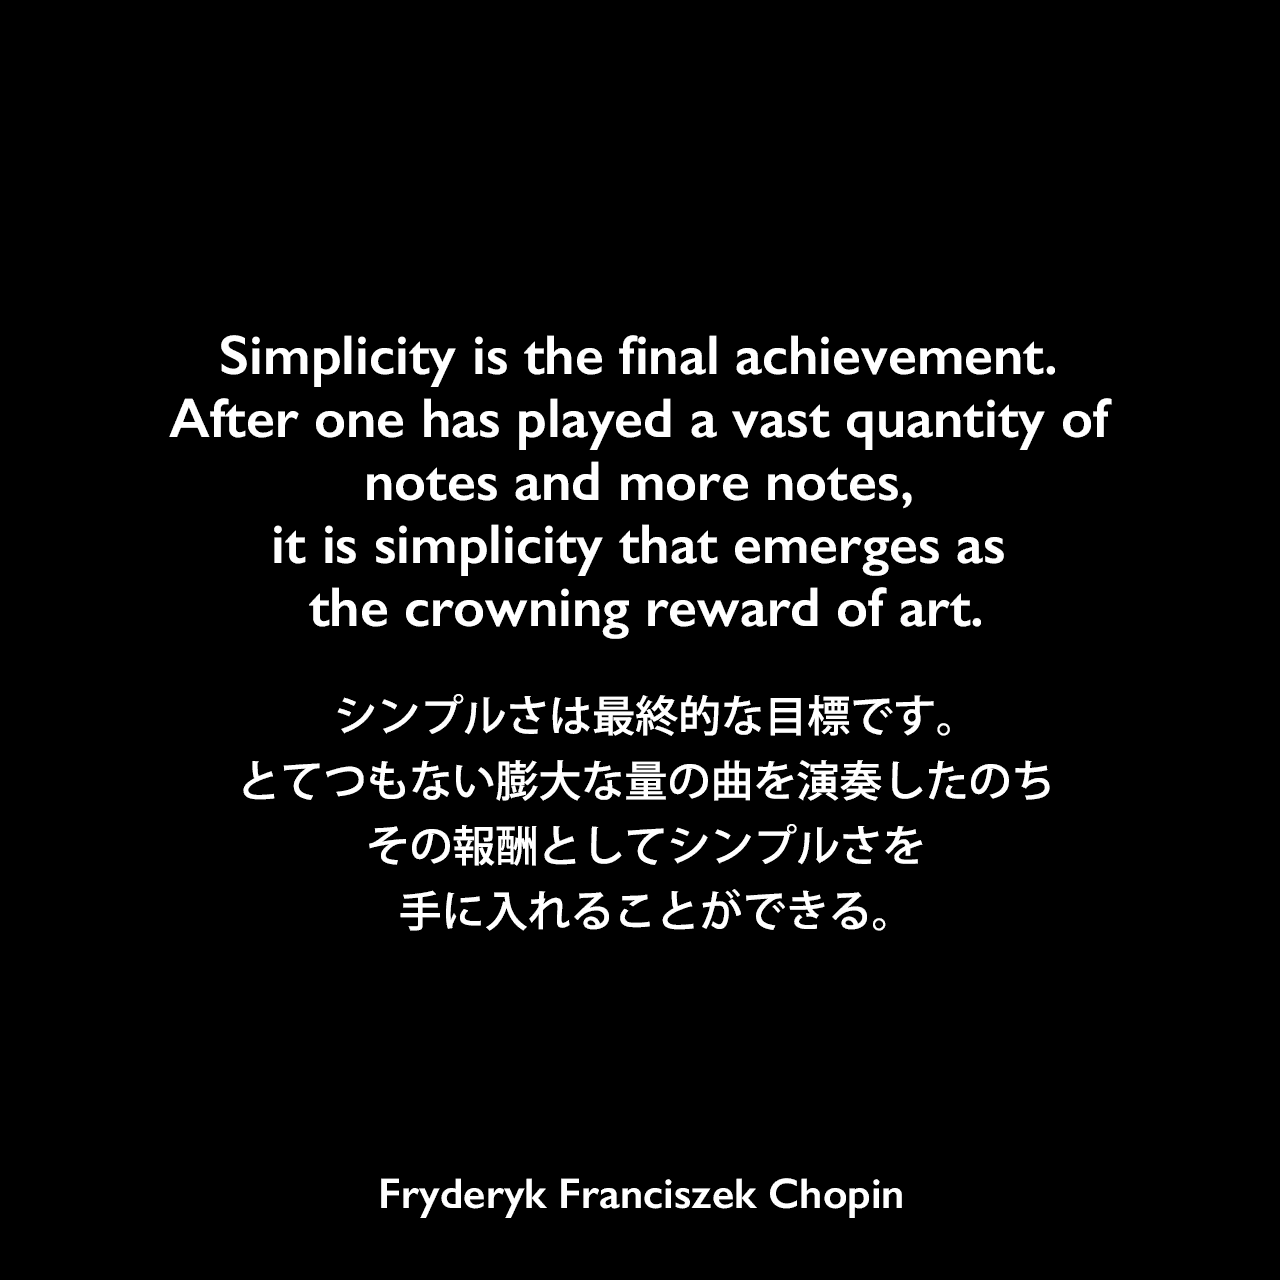 Simplicity is the final achievement. After one has played a vast quantity of notes and more notes, it is simplicity that emerges as the crowning reward of art.シンプルさは最終的な目標です。 とてつもない膨大な量の曲を演奏したのち、その報酬としてシンプルさを手に入れることができる。- Joshua Fostの本「If Not God, Then What?」よりFryderyk Franciszek Chopin